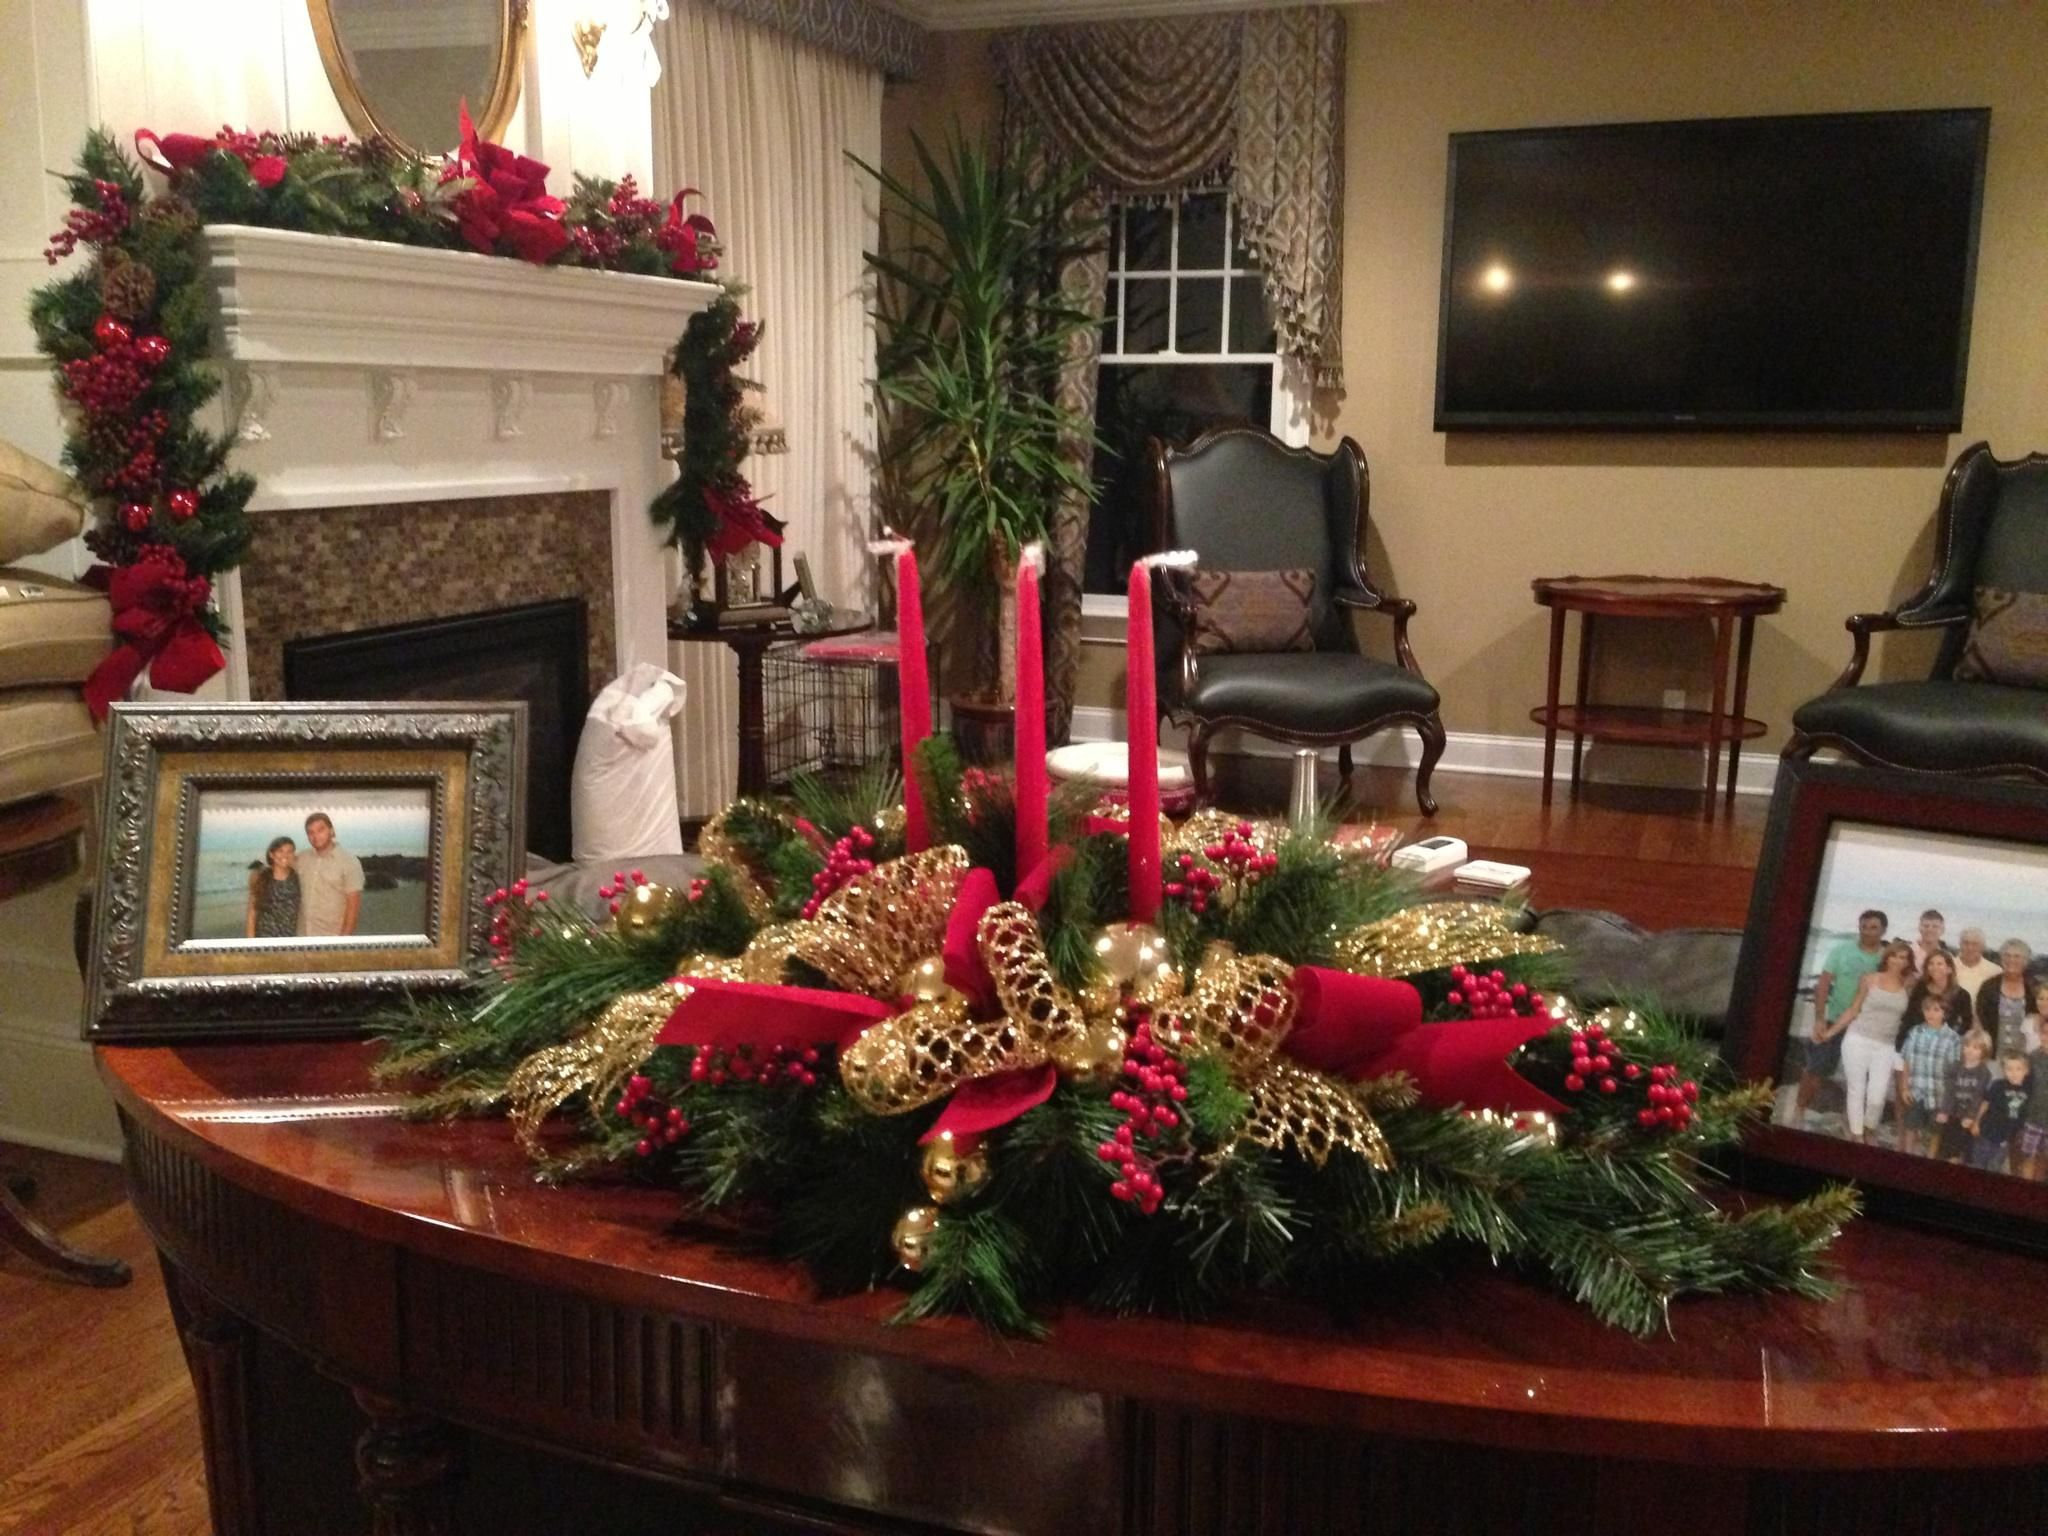 From stunning mantel to festive glass table tops, capture the magic of the season with these 7 simple- yet stylish touches for your holiday home decor http://showerman.com/home-decorating-ideas/